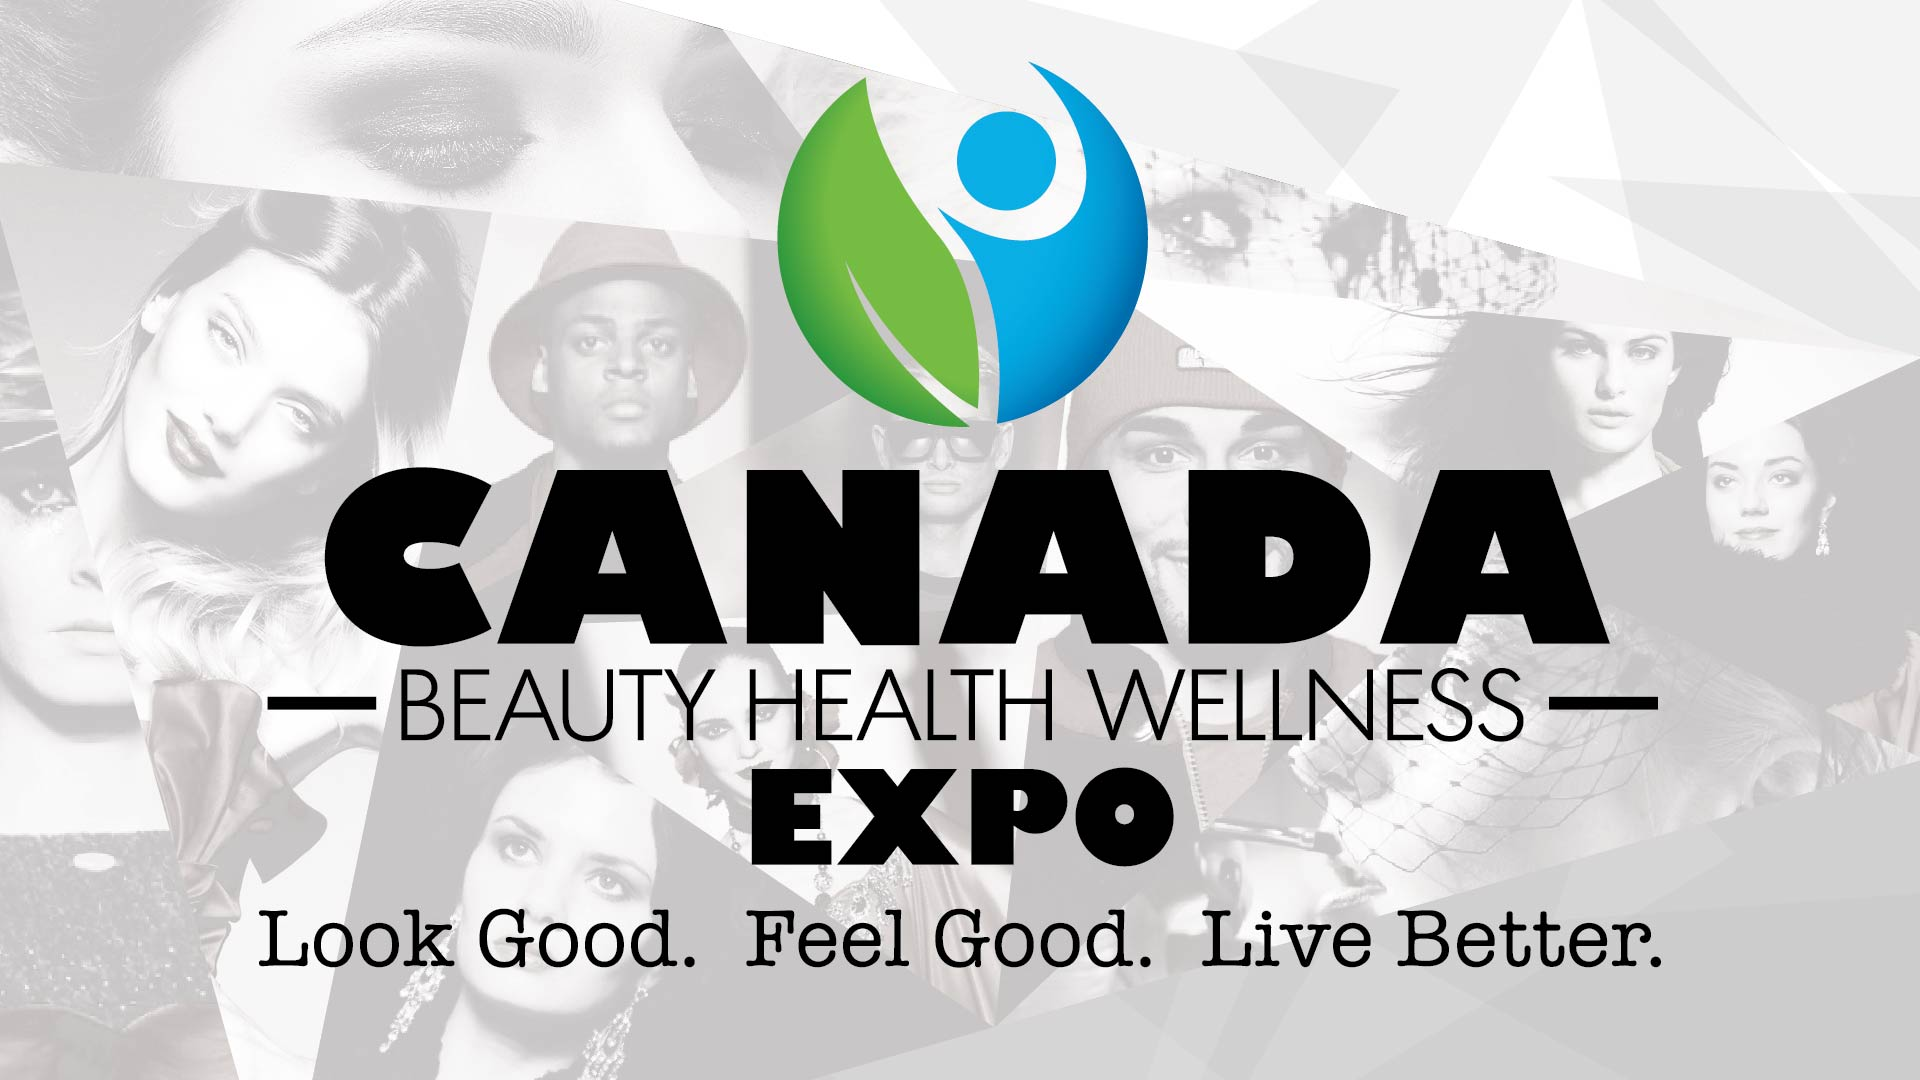 Canada Beauty Health Wellness Expo